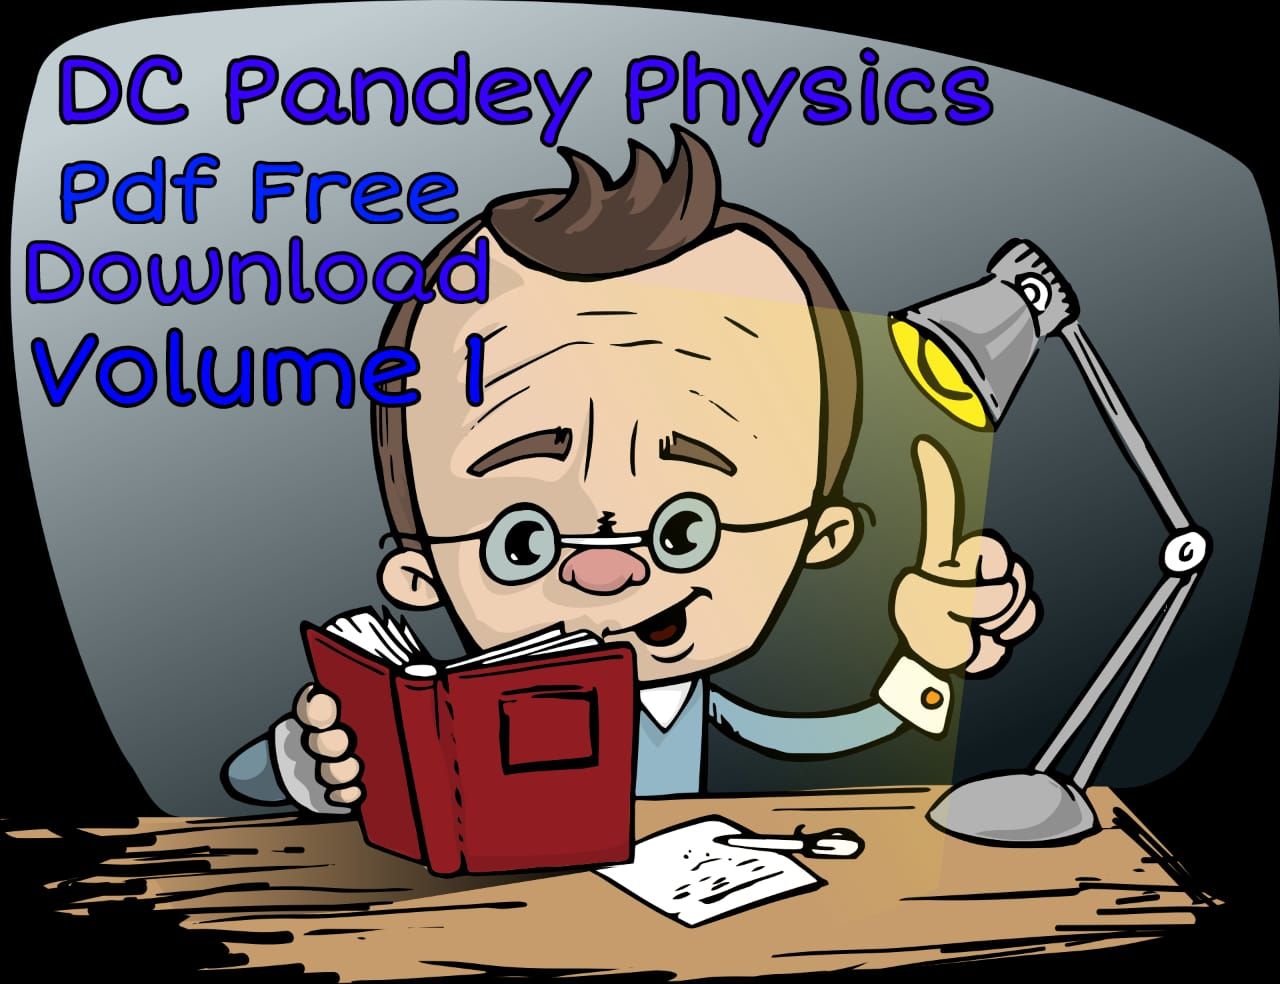 DC Pandey Physics PDF Free Download Volume 1